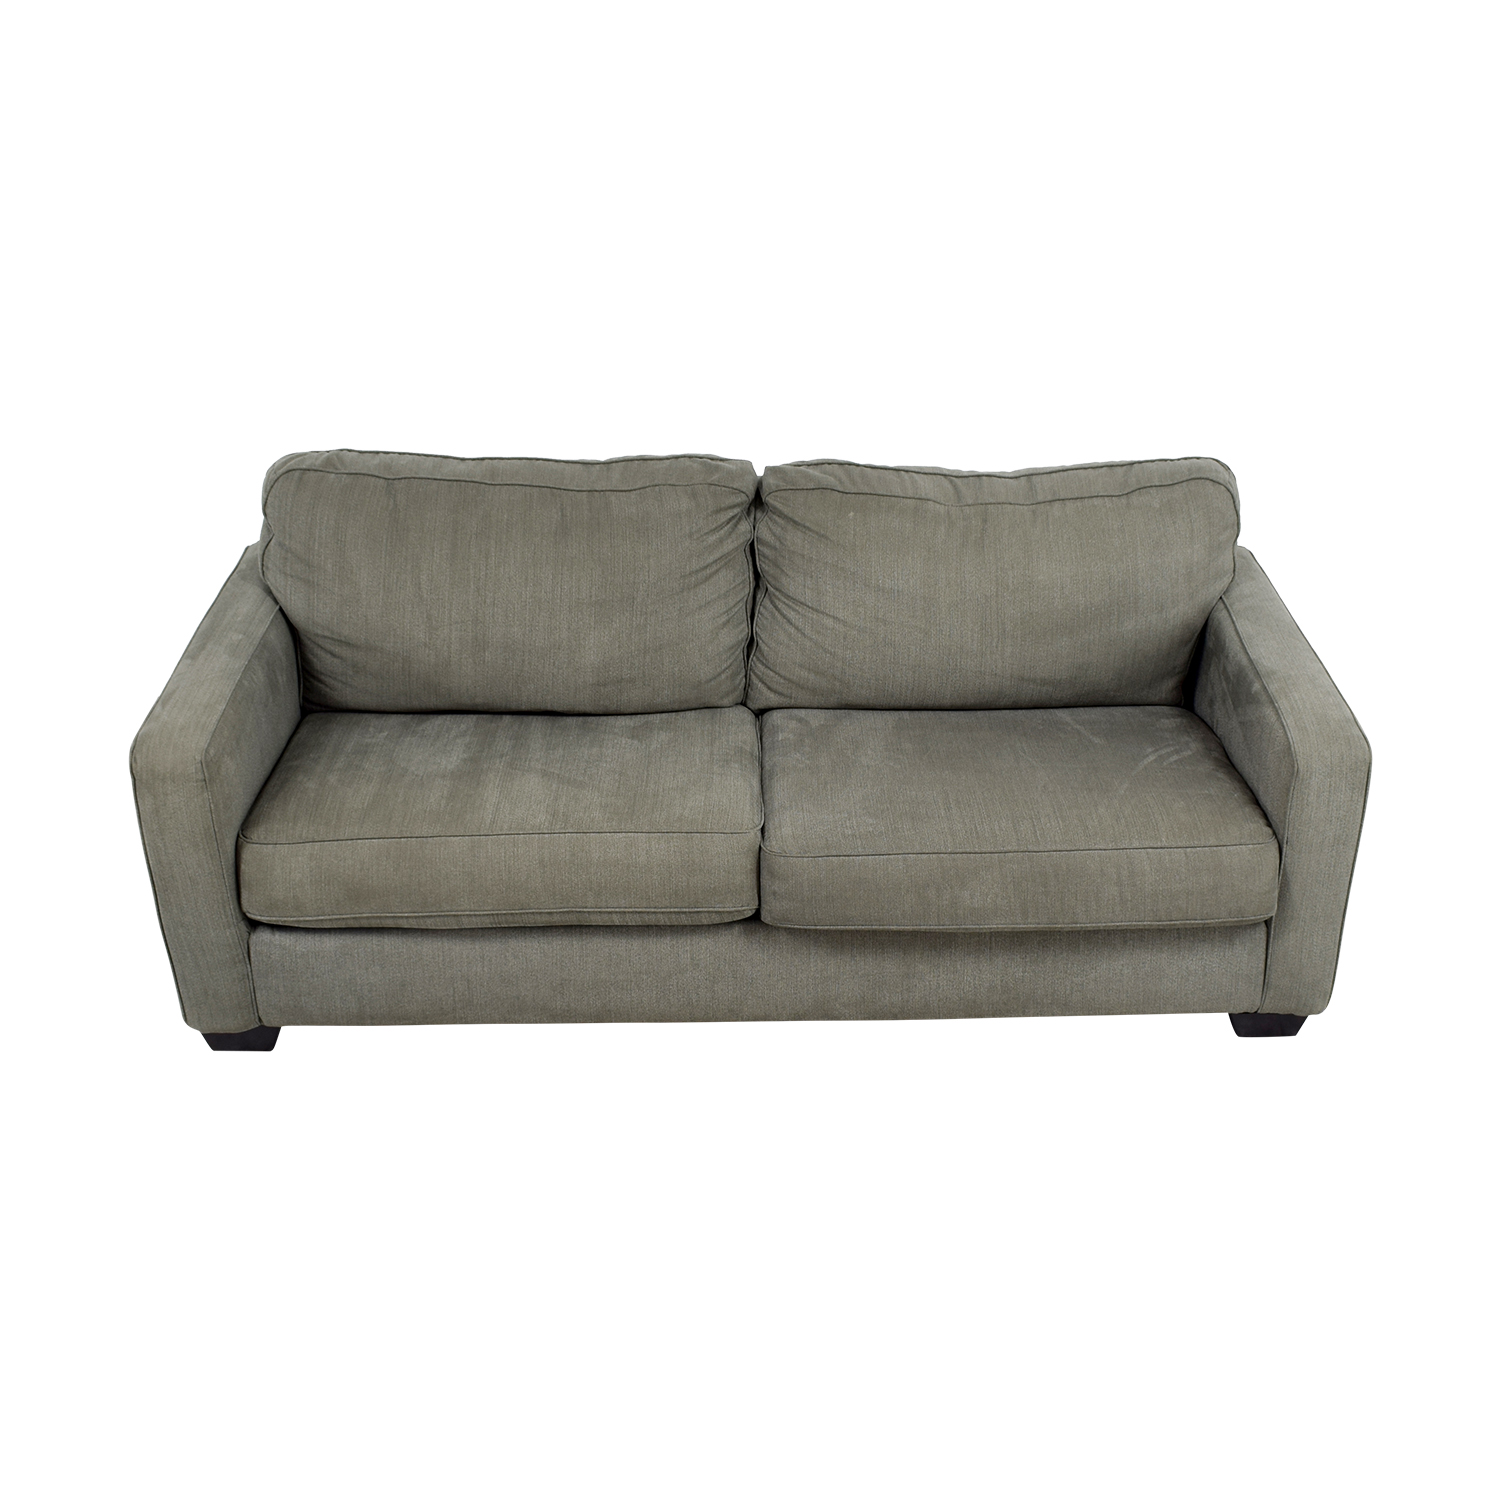 buy Raymour & Flanigan Grey Two-Cushion Sofa Raymour & Flanigan Sofas